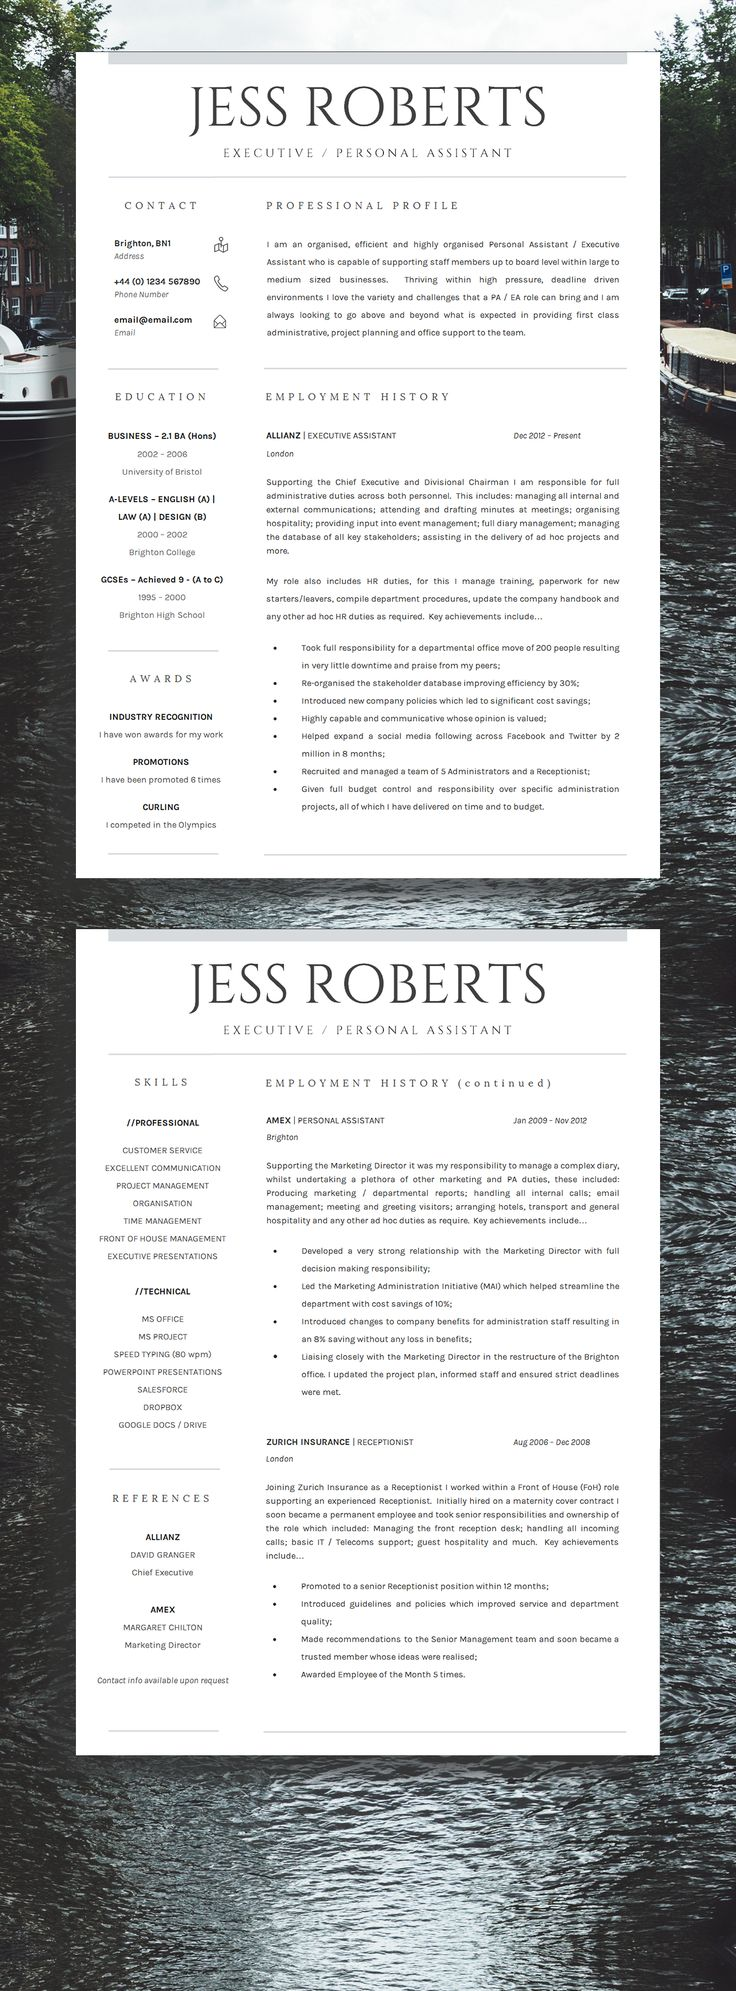 cool resumes sometimes the most striking resumes are the most simple